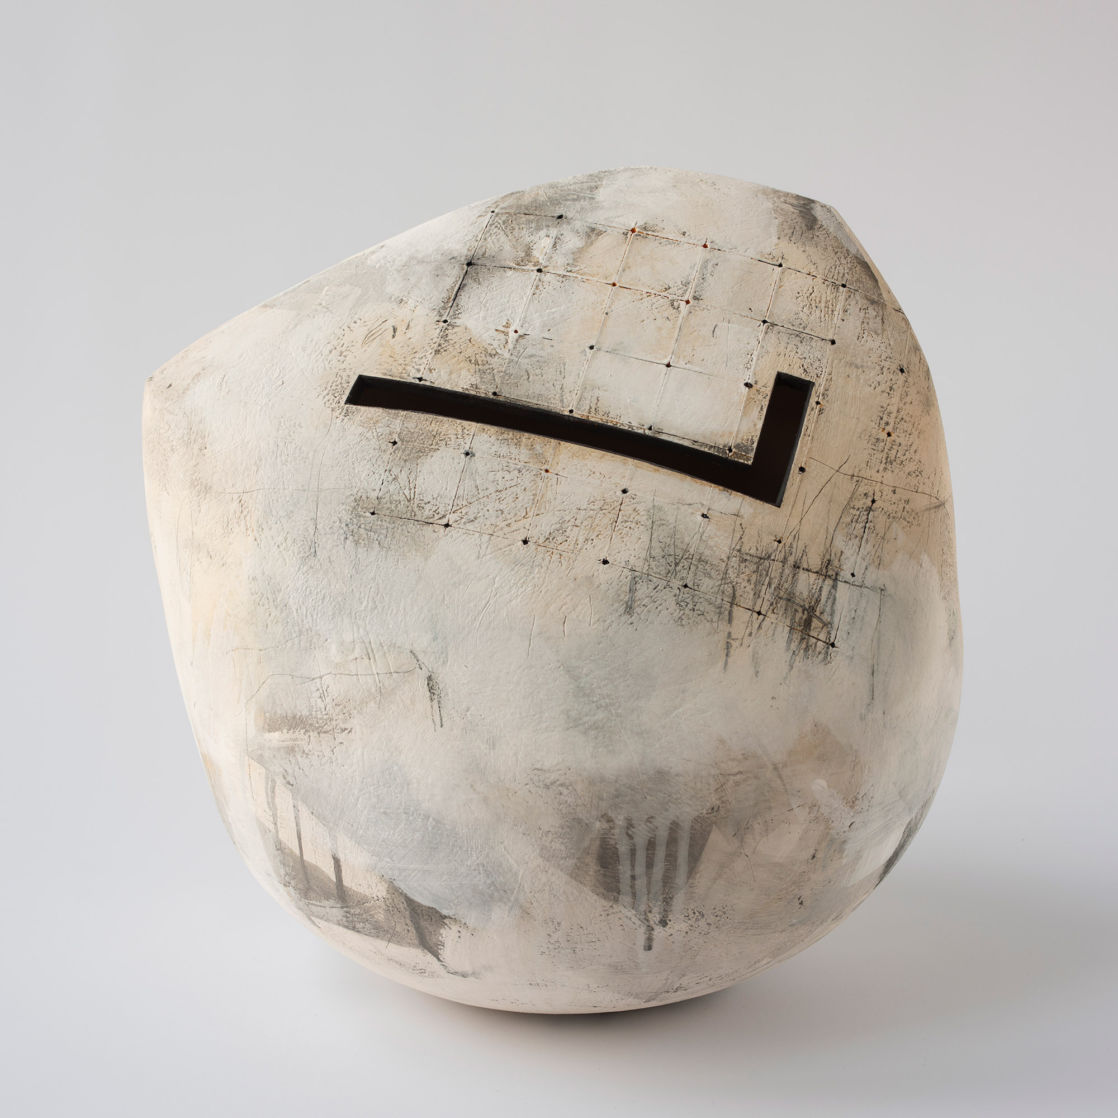 Work by Rebecca Appleby. Photo courtesy the Contemporary Ceramics Centre, London